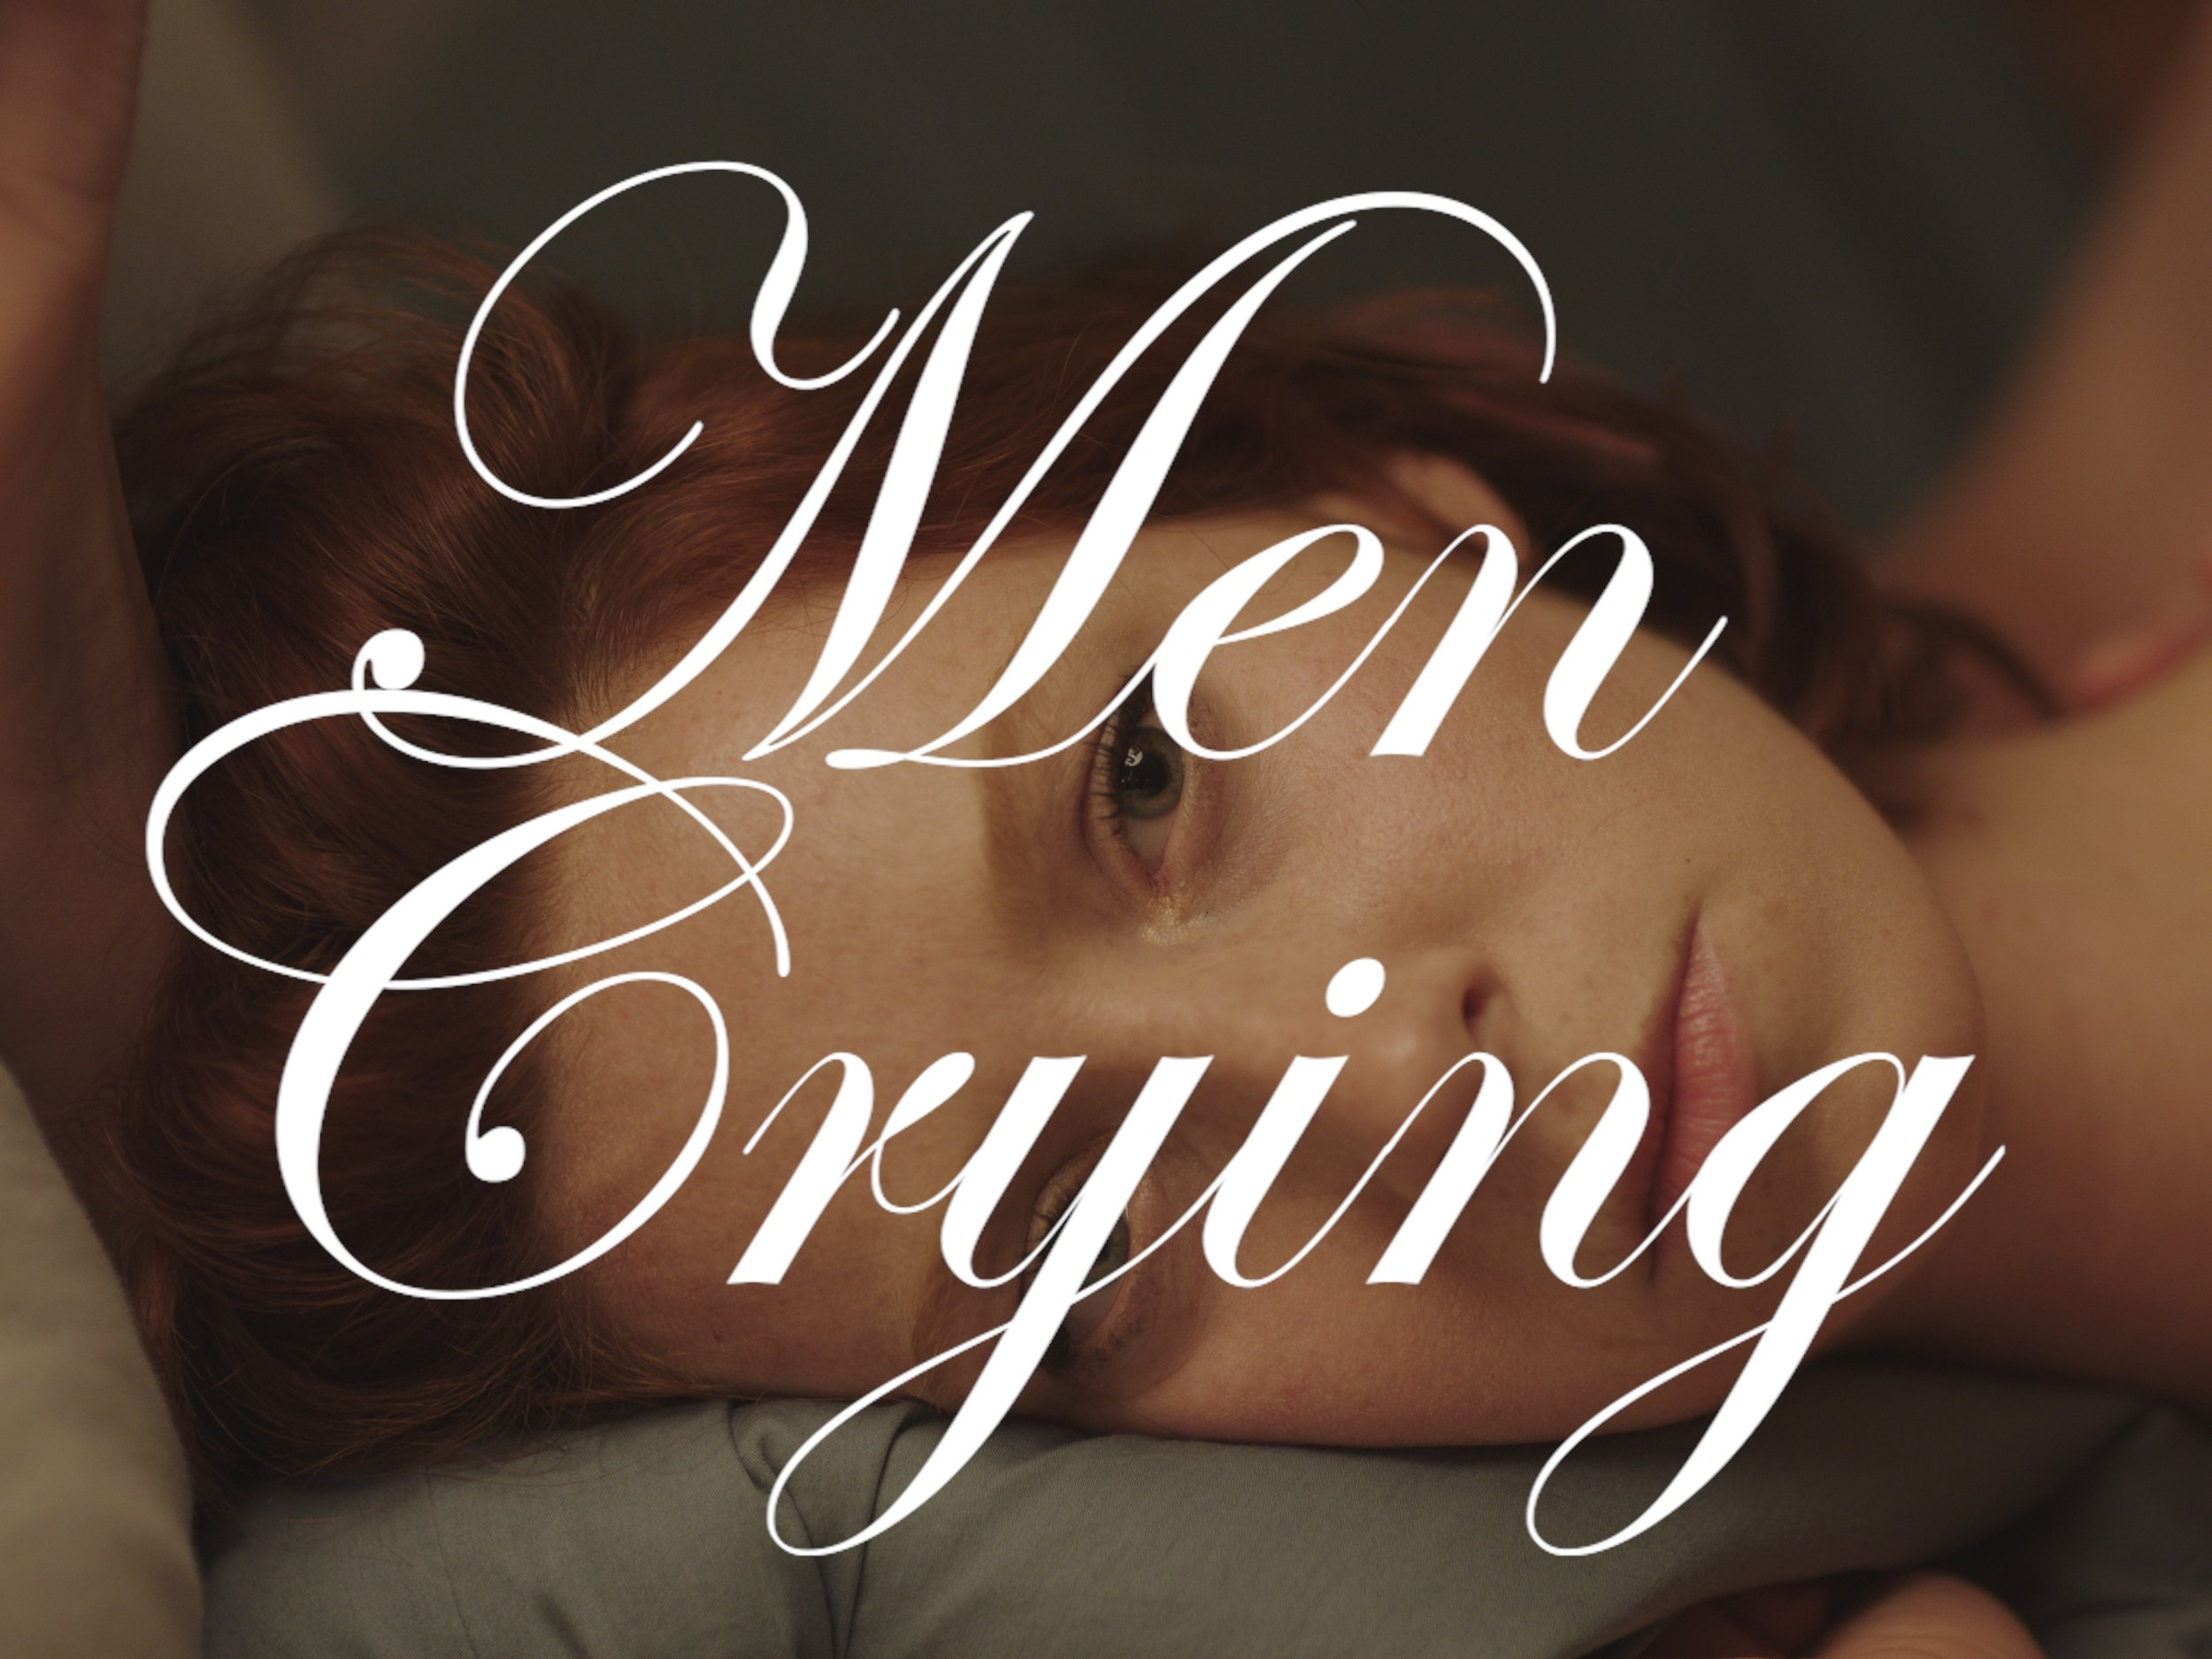 Men Crying Cover.jpg